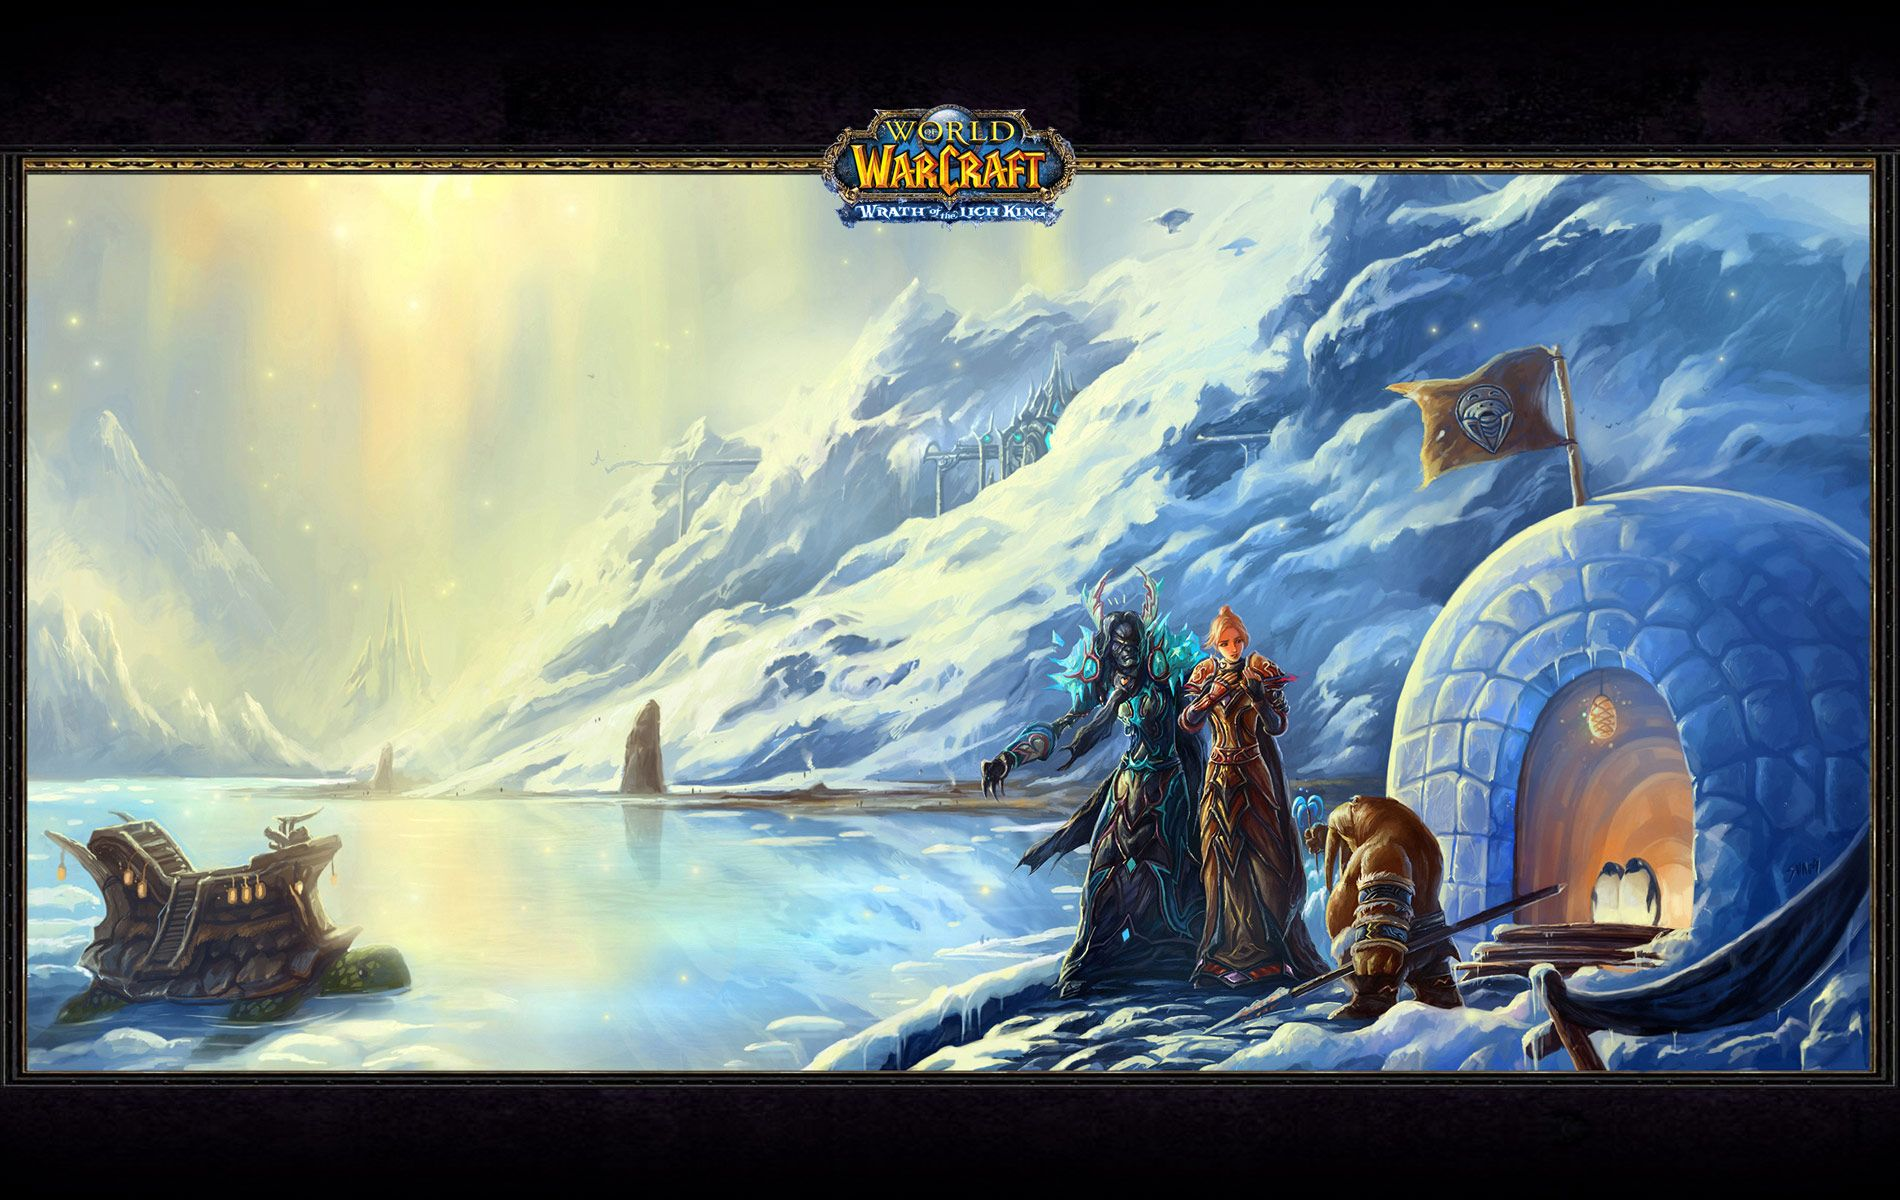 Lich king world of warcraft wrath of the lich king wallpaper